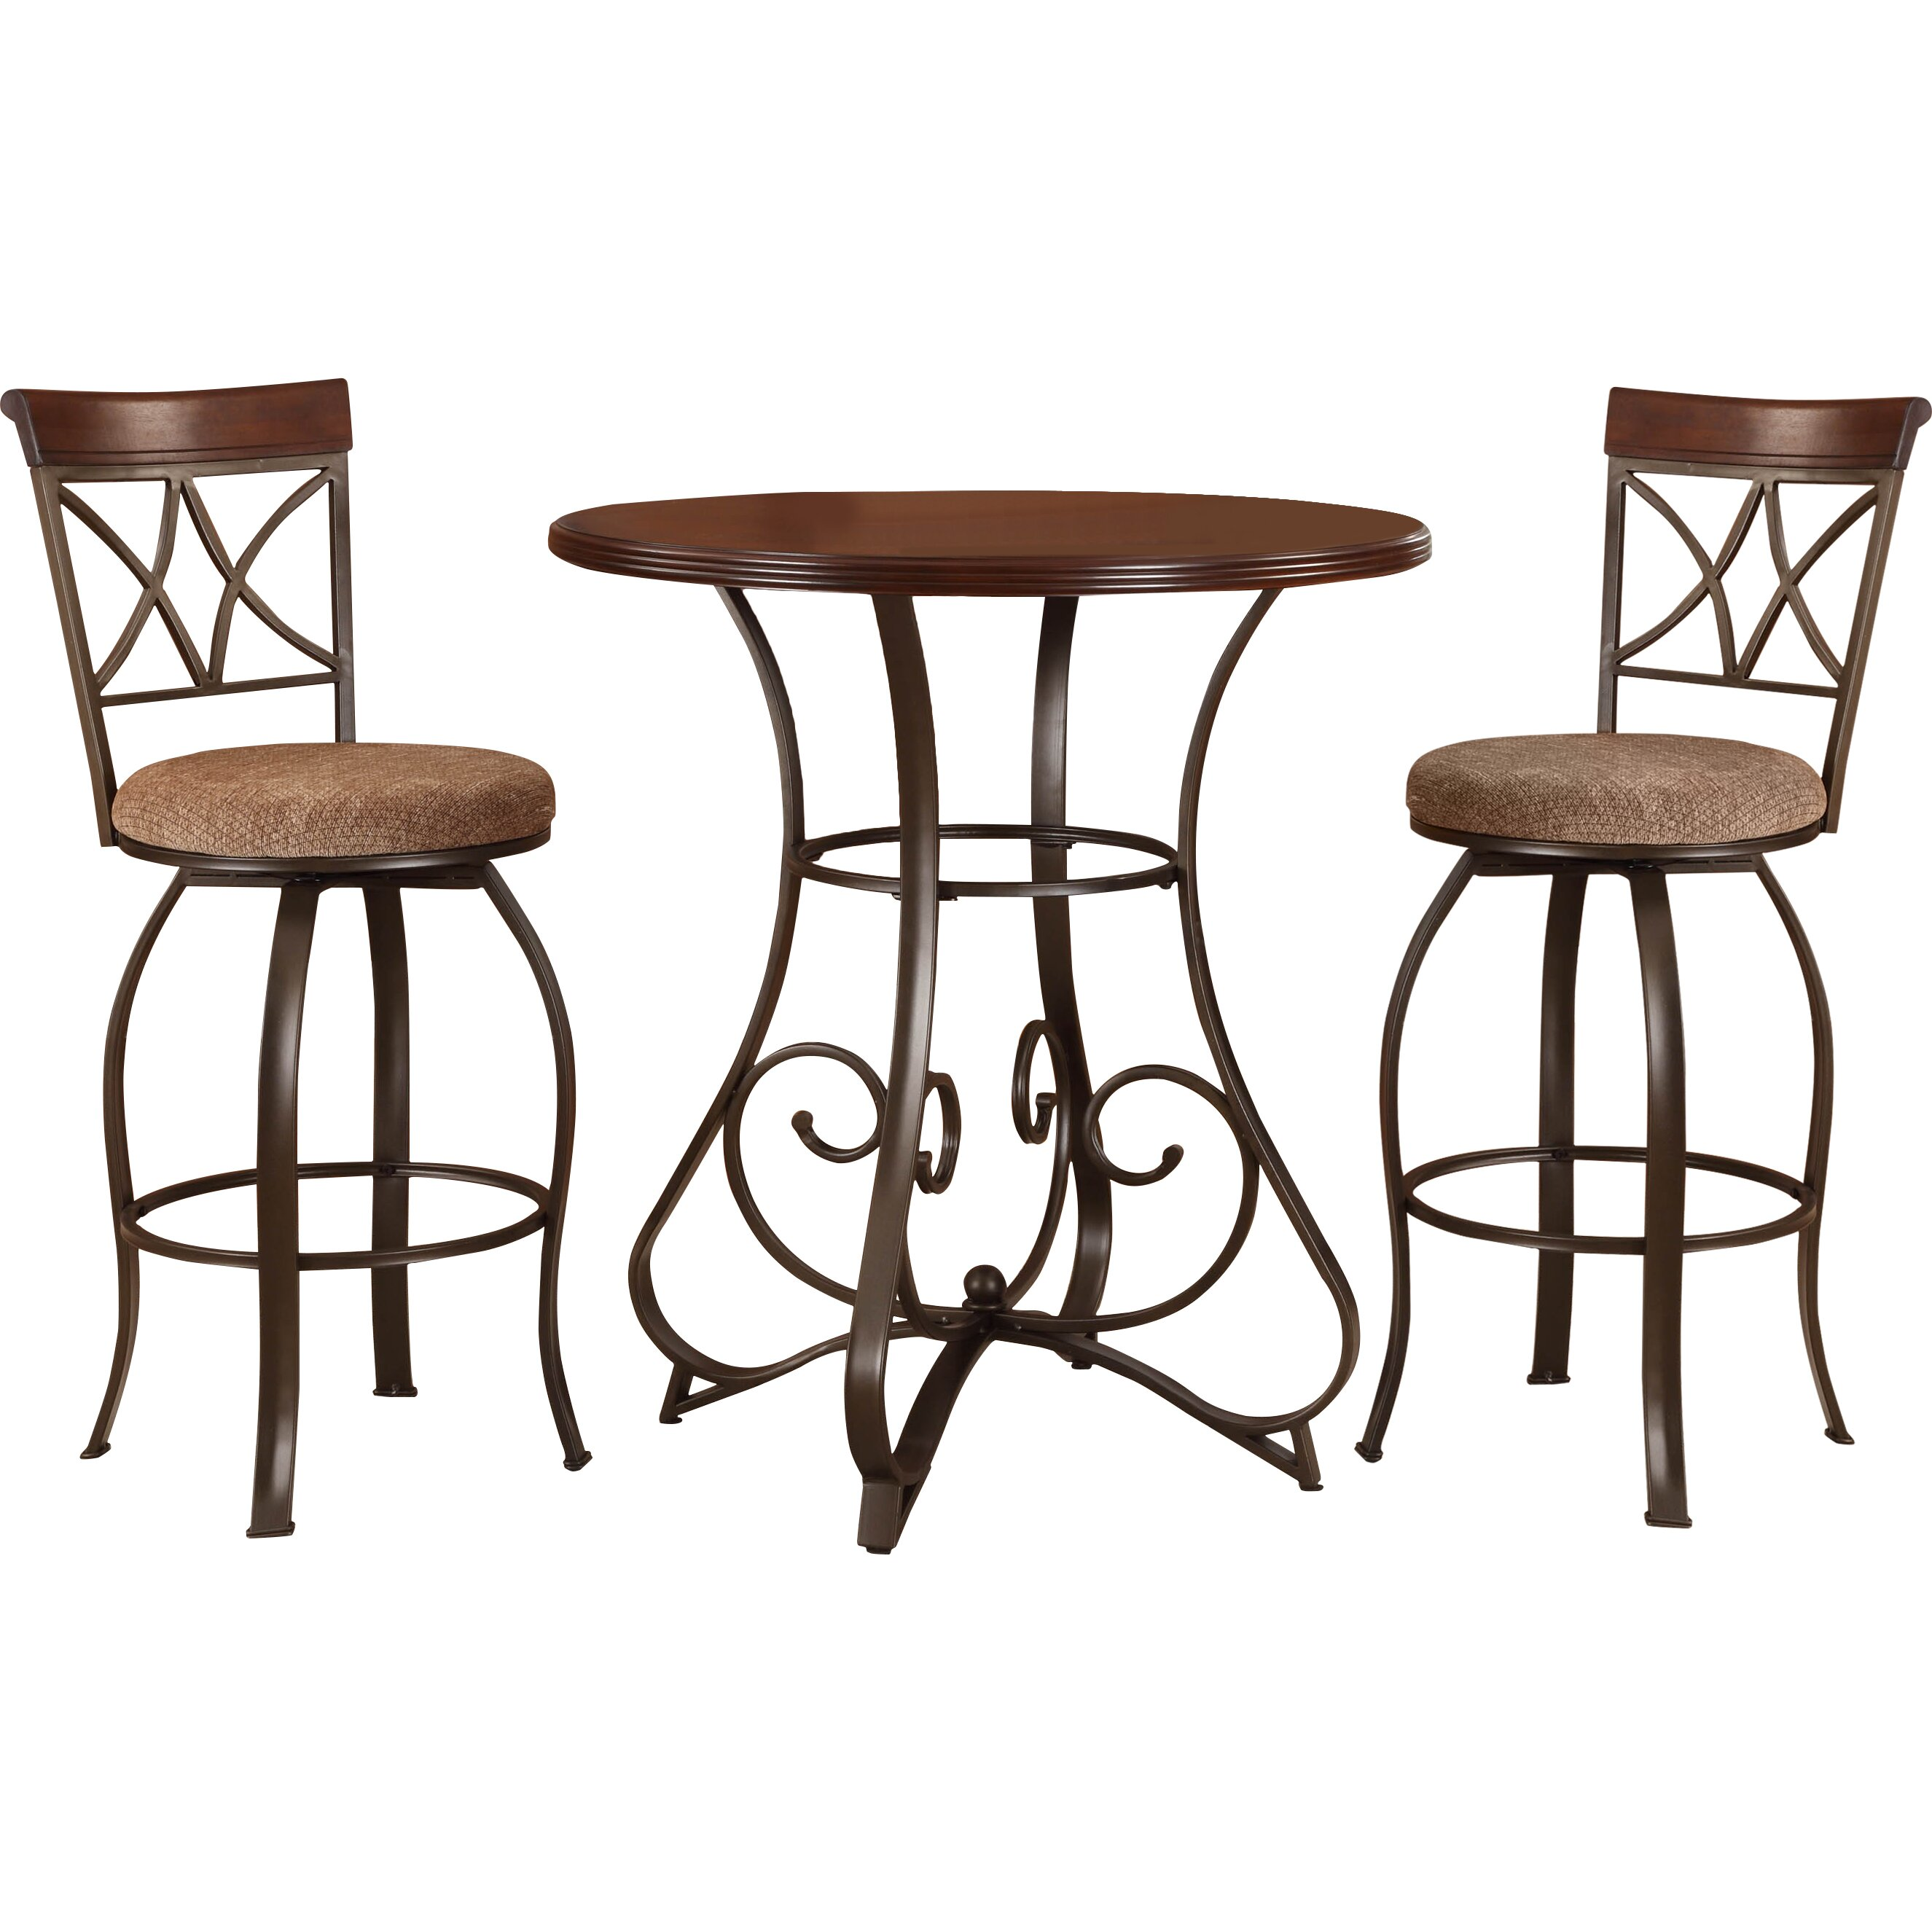 3 Piece Pub Table Set Wayfair